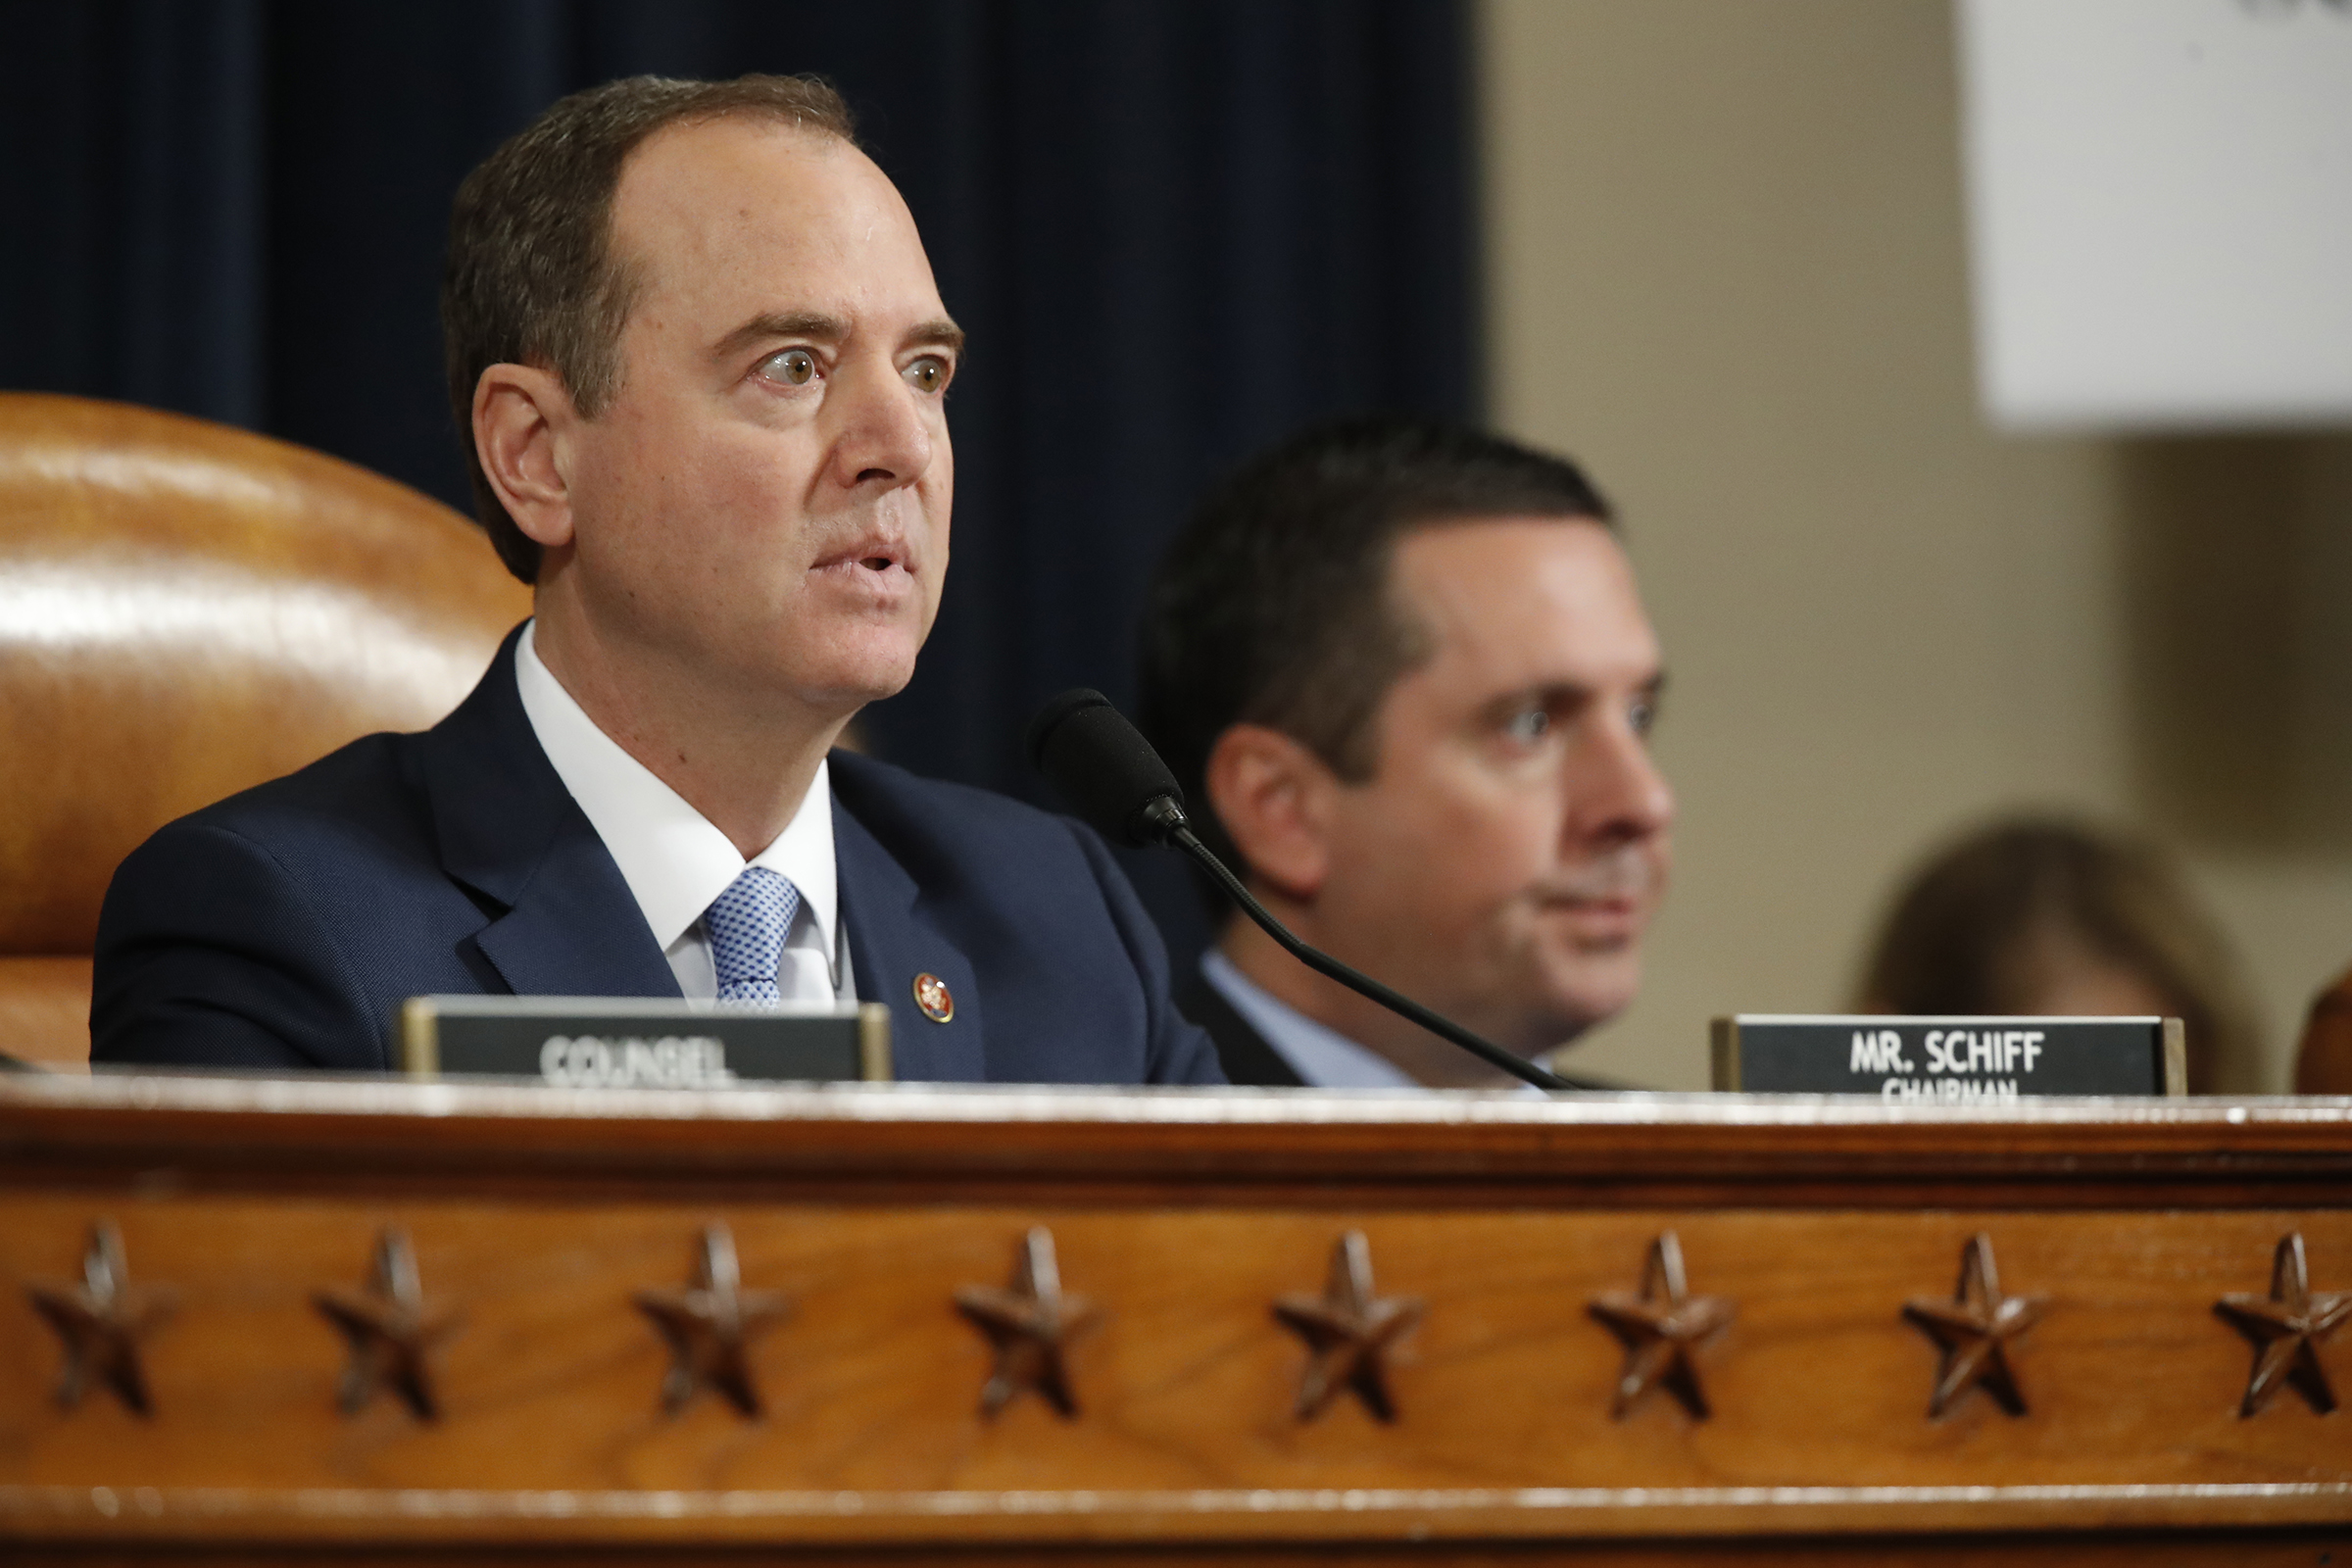 House Intelligence Committee Chairmen Rep. Adam Schiff, D-Calif., left, gives opening remarks as ranking member Rep. Devin Nunes, R-Calif., left, looks on, before former Ambassador to Ukraine Marie Yovanovitch testifies before the House Intelligence Committee on Capitol Hill in Washington, on Nov. 15, 2019.